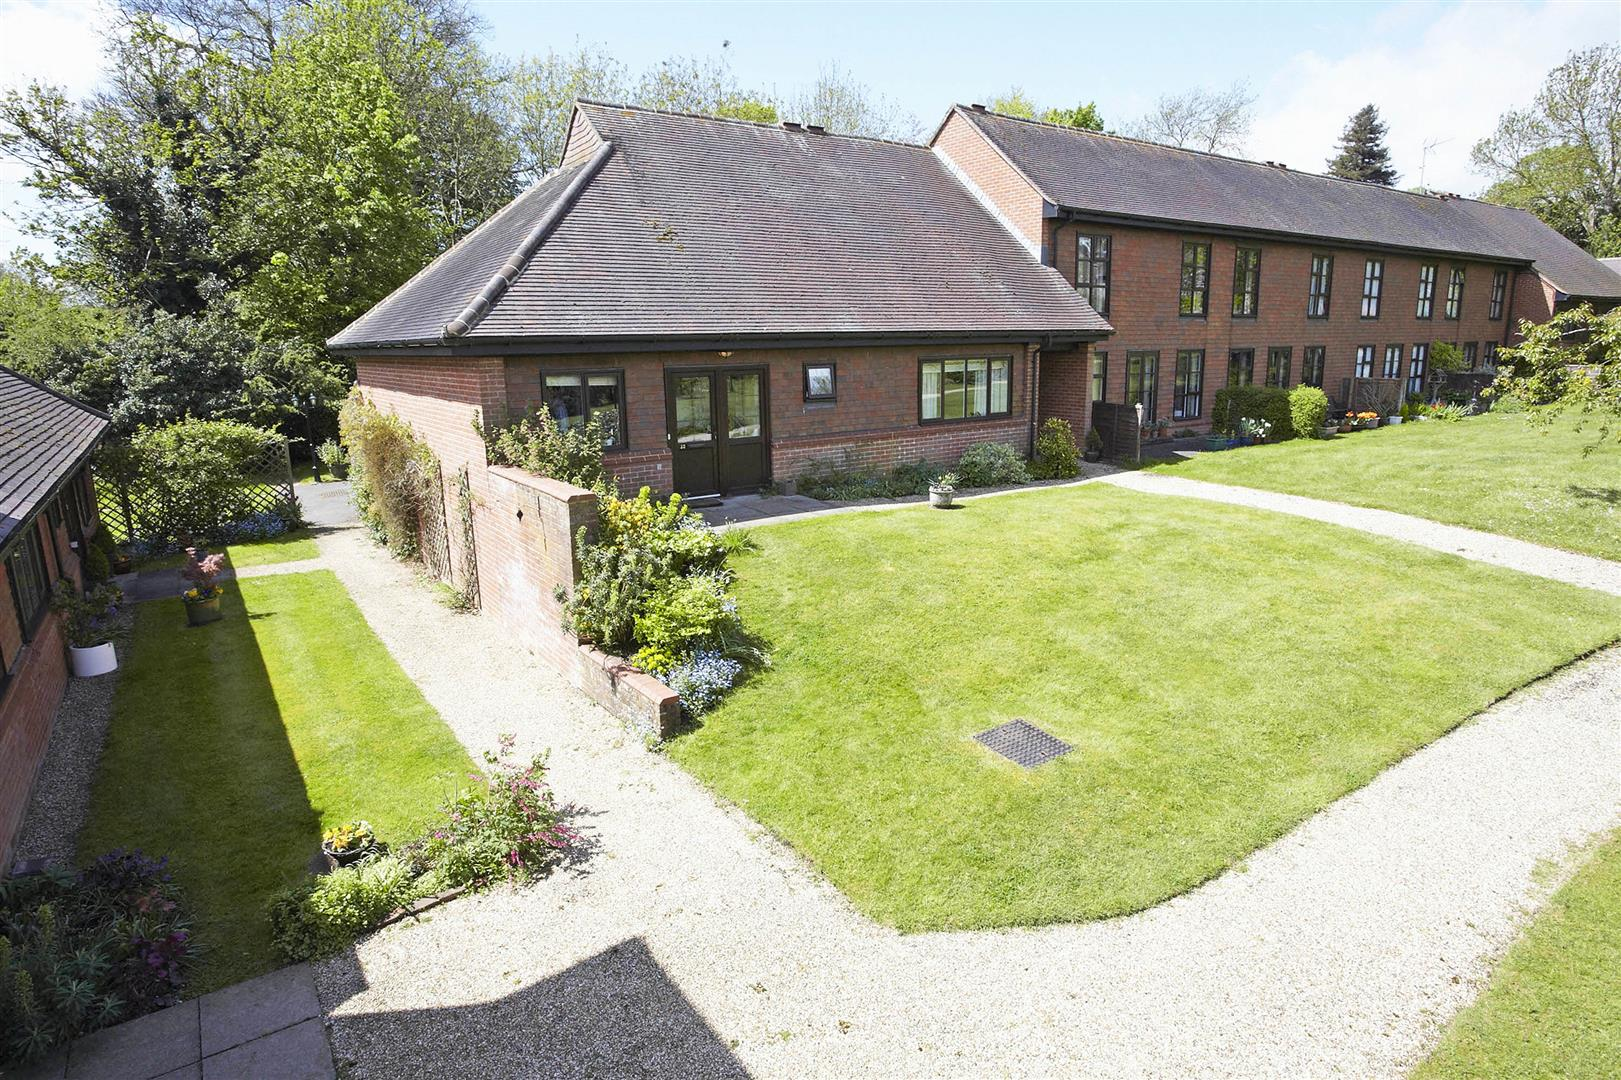 2 Bedrooms Bungalow for sale in Old Parsonage Court, West Malling